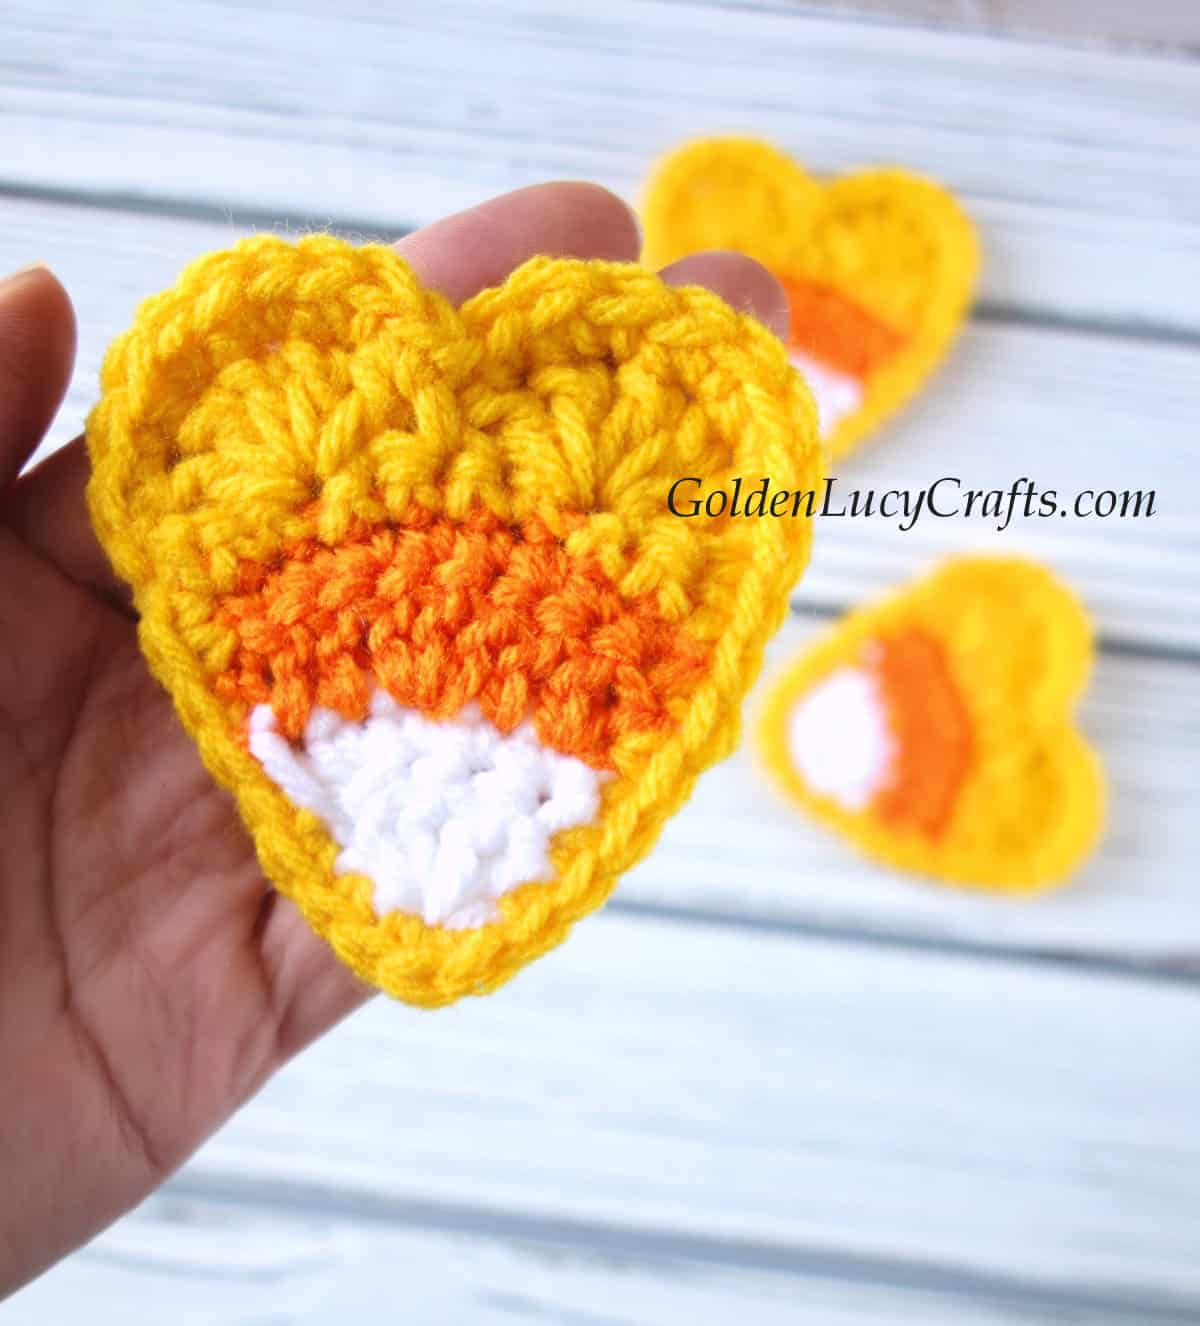 Crocheted candy corn heart in the palm of a hand.